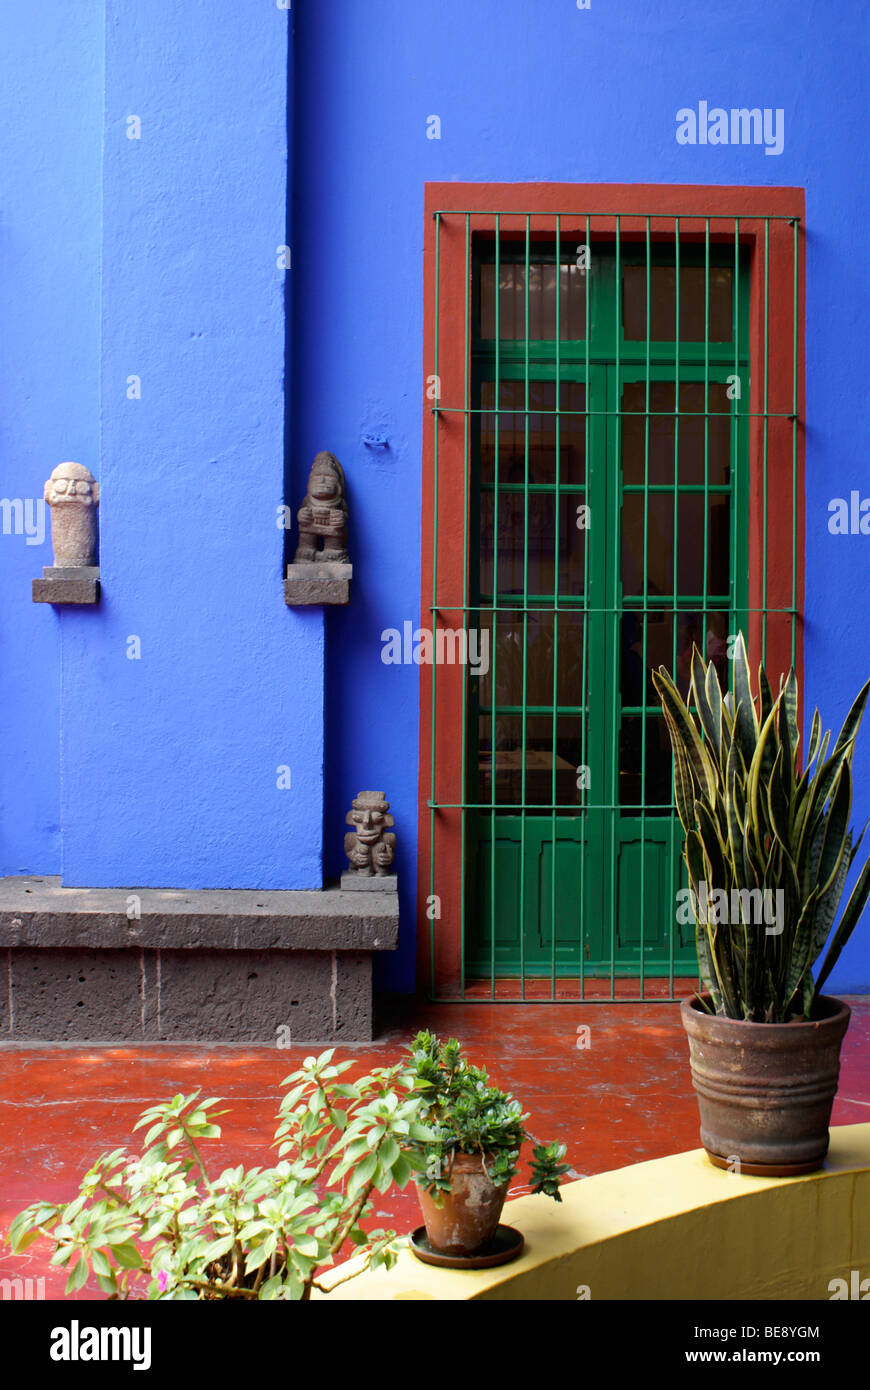 Courtyard at the Museo Frida Kahlo, also known as the Casa Azul, or Blue house, Coyoacan, Mexico City - Stock Image